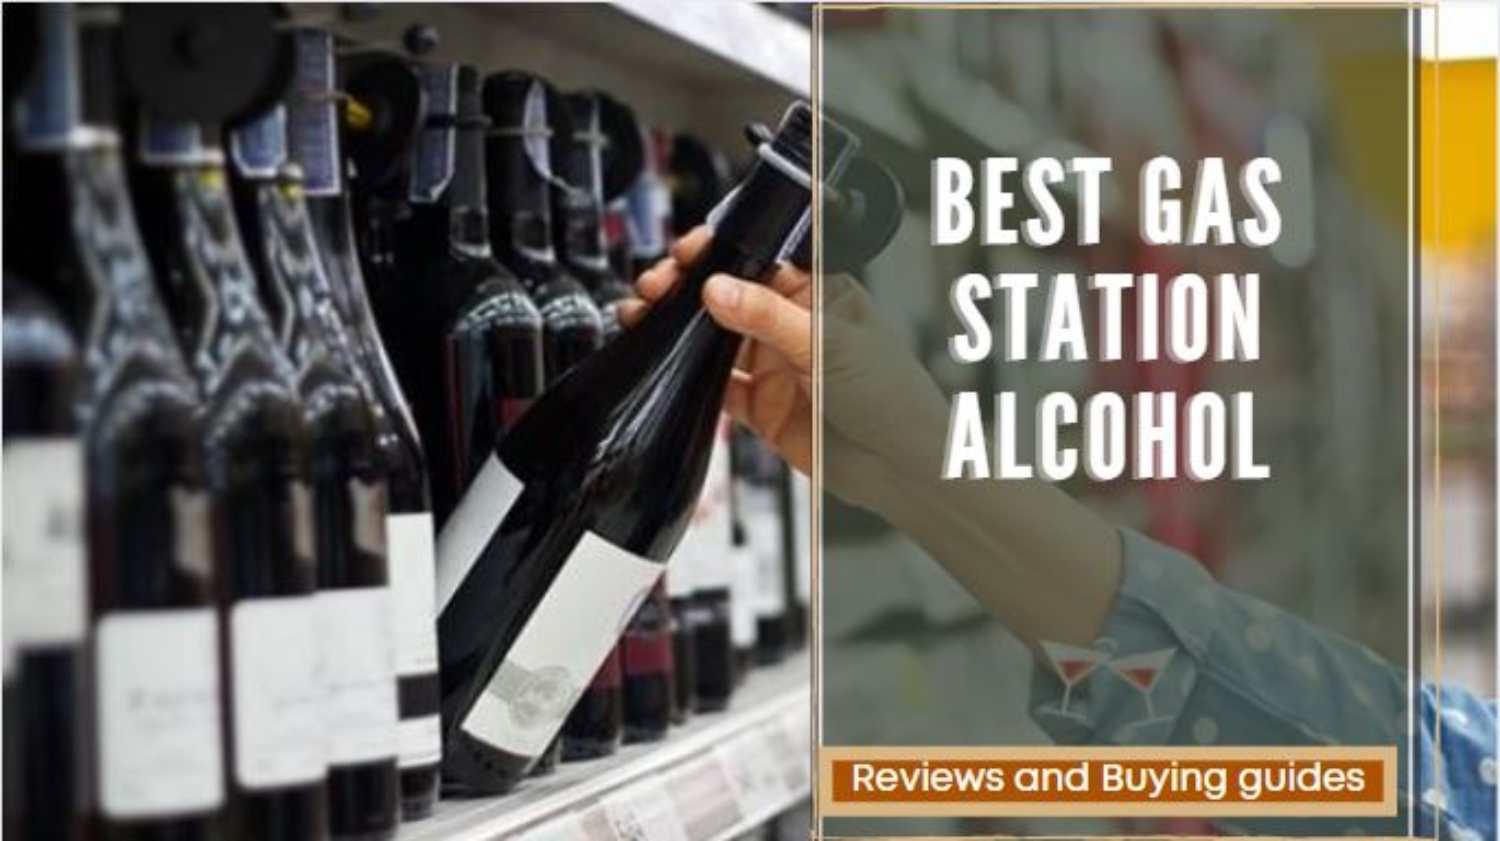 Best Gas Station Alcohol